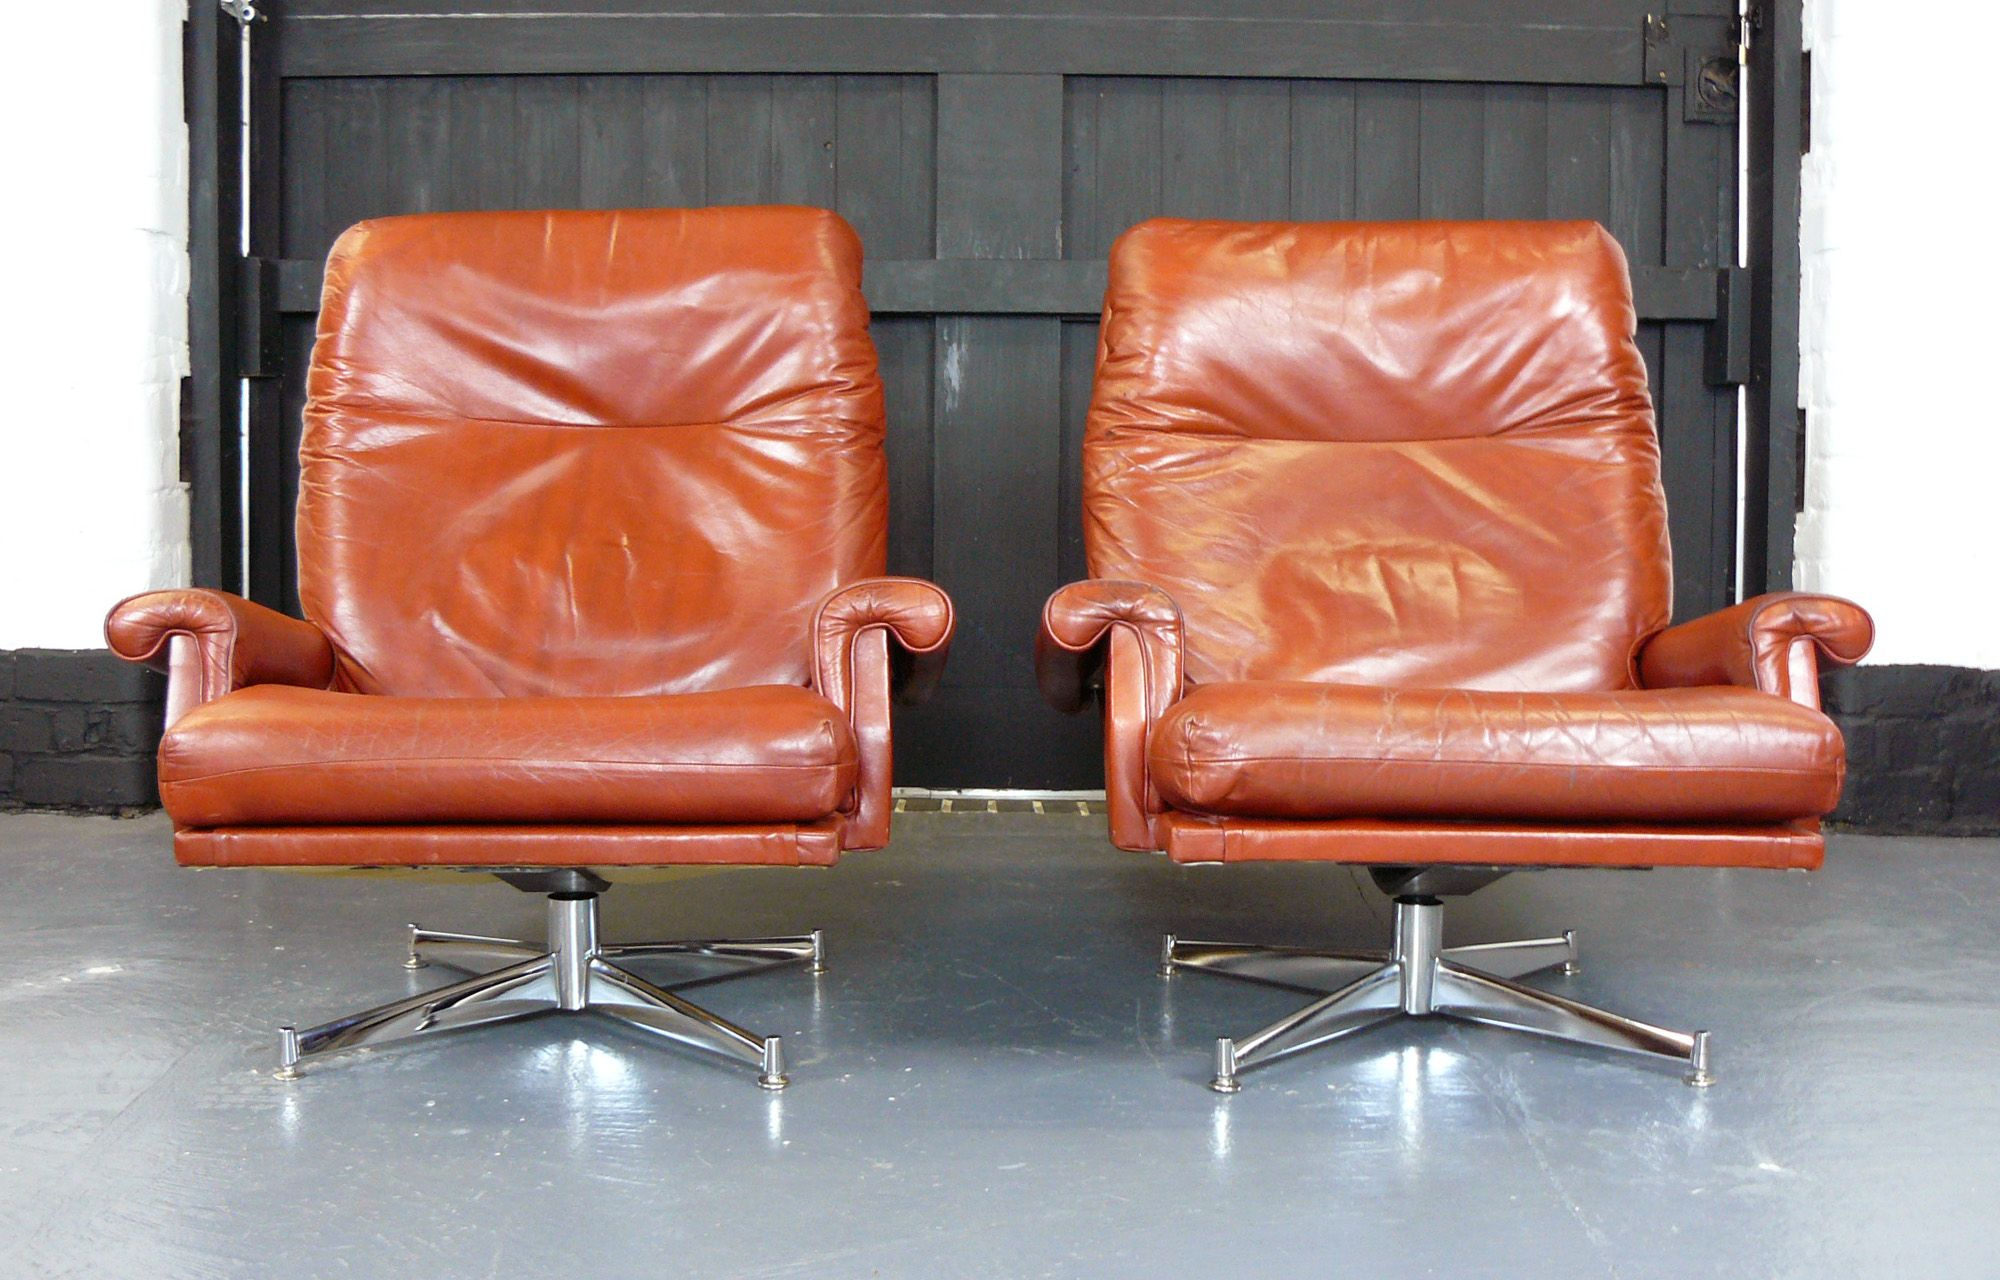 Stylish Mid Century Red Leather Swivel Chairs Mcm In 2019